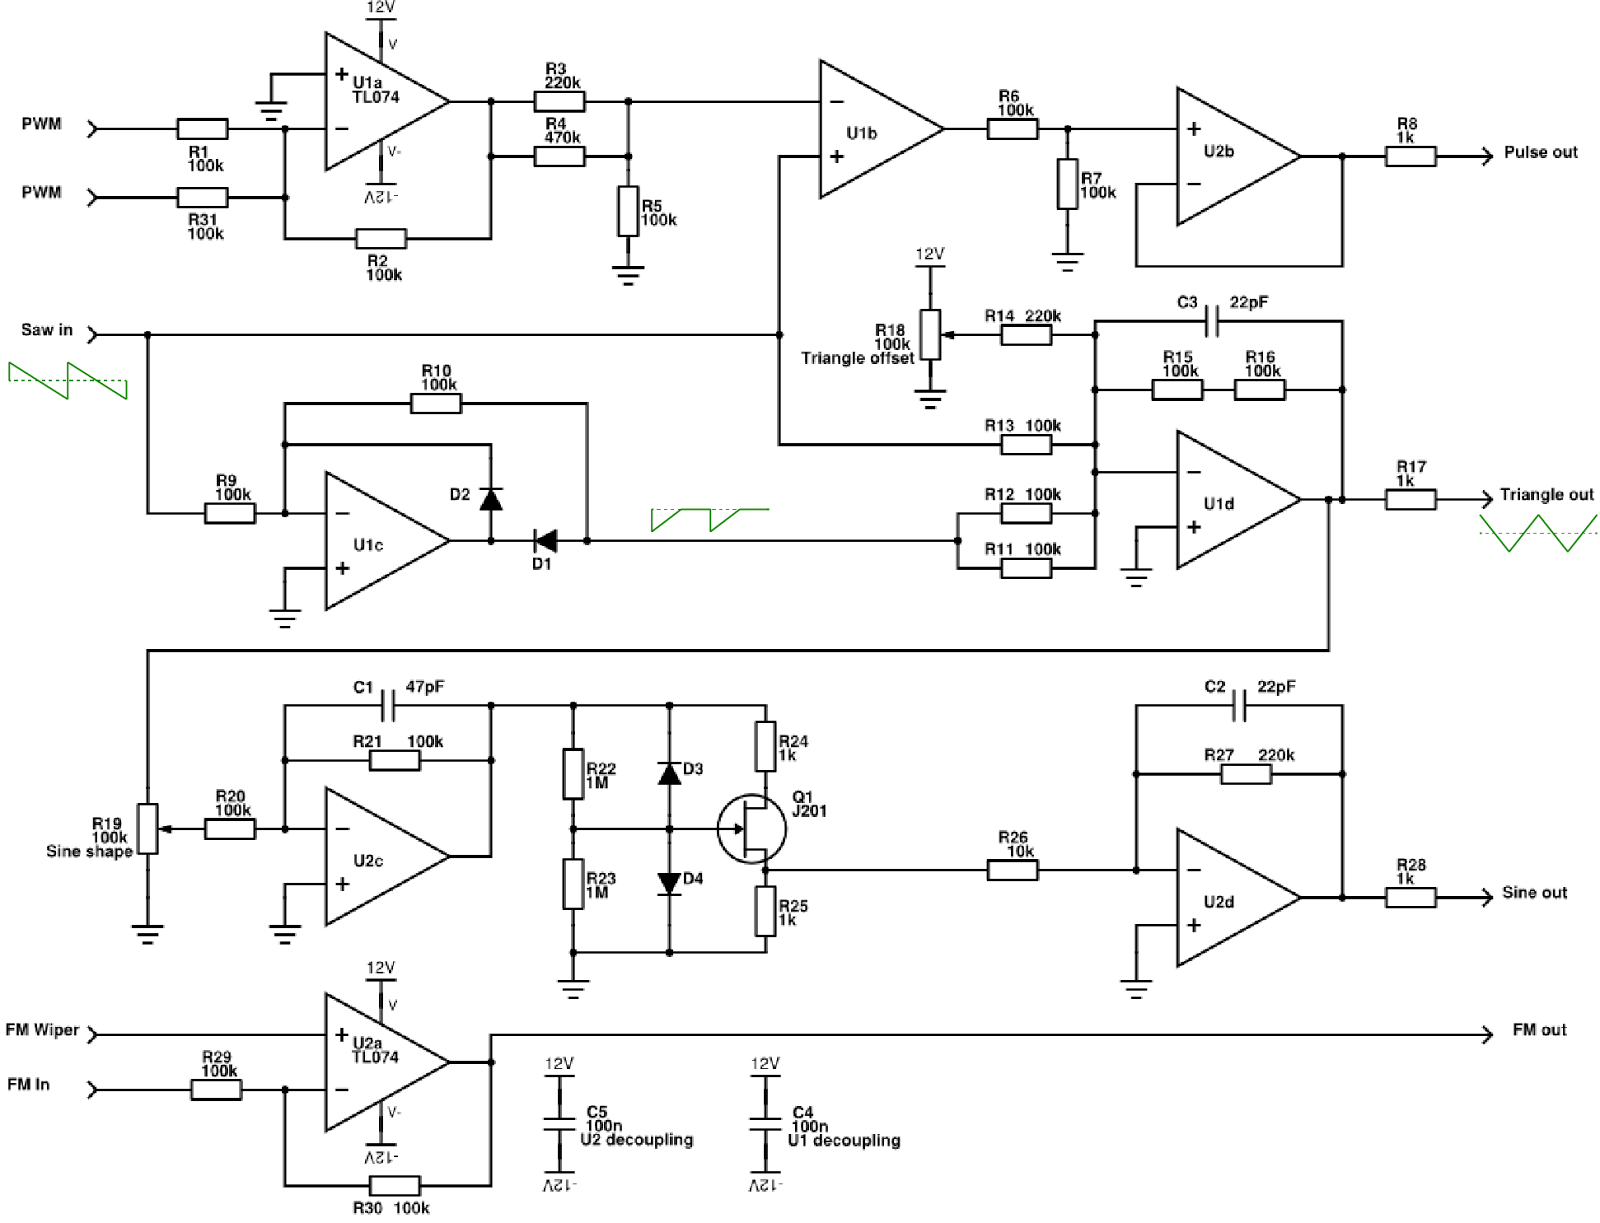 Pulse Width Modulation Circuit Schematics The Circuit Is ... on